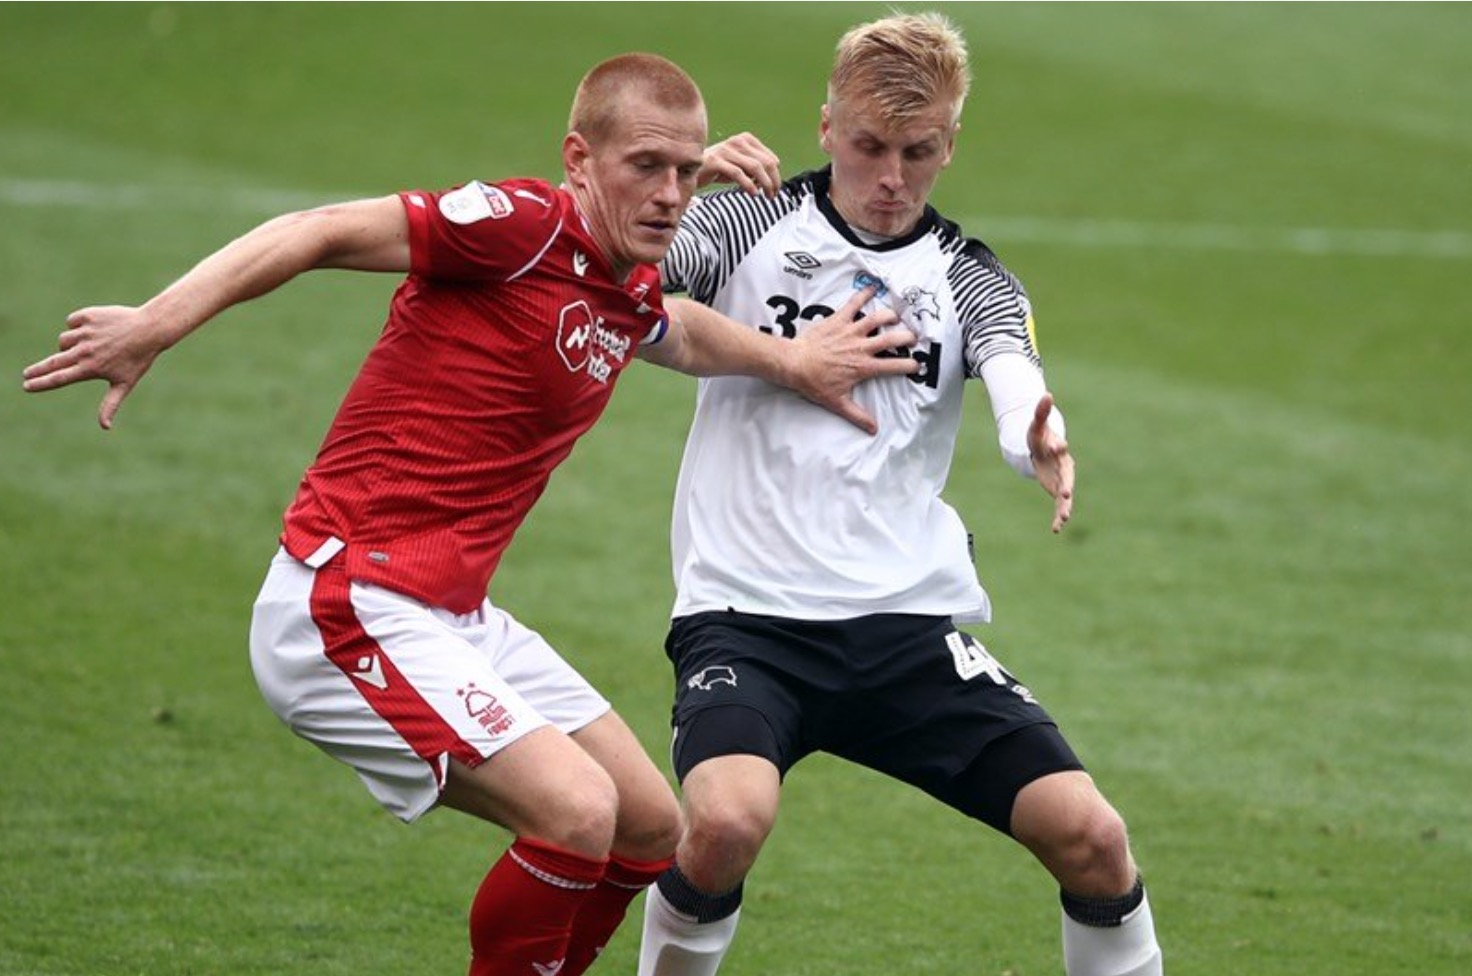 Derby County 1 - 1 Forest